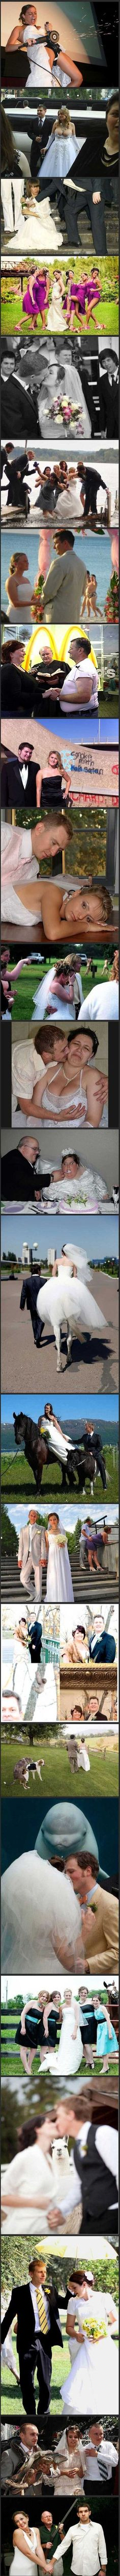 Hilarious WTF wedding photos.: